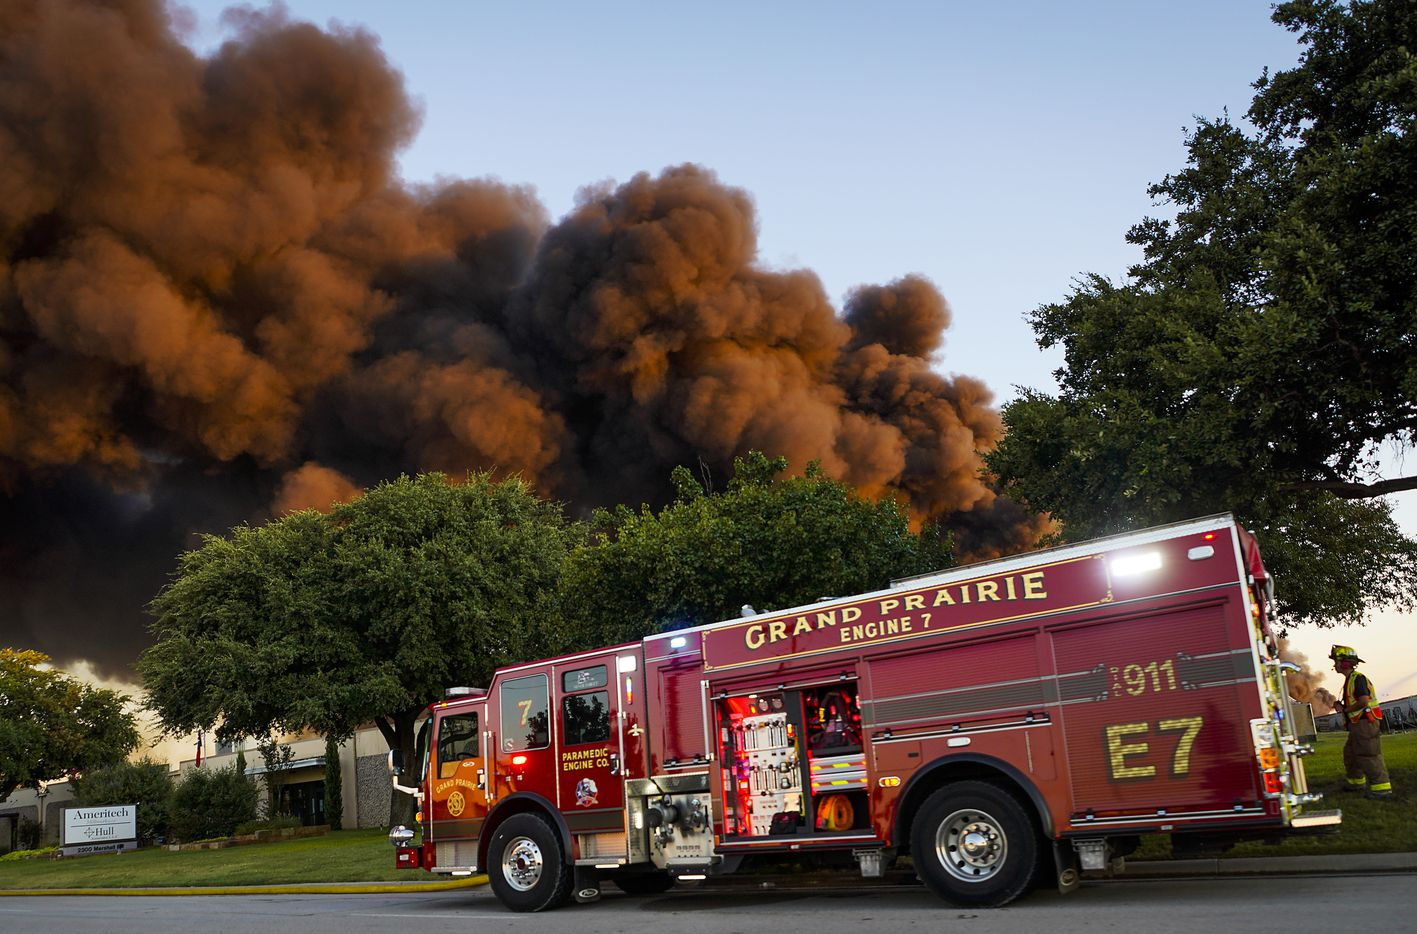 Fire crews battle a massive blaze in an industrial area of Grand Prairie just before sunrise on Wednesday, Aug. 19, 2020.